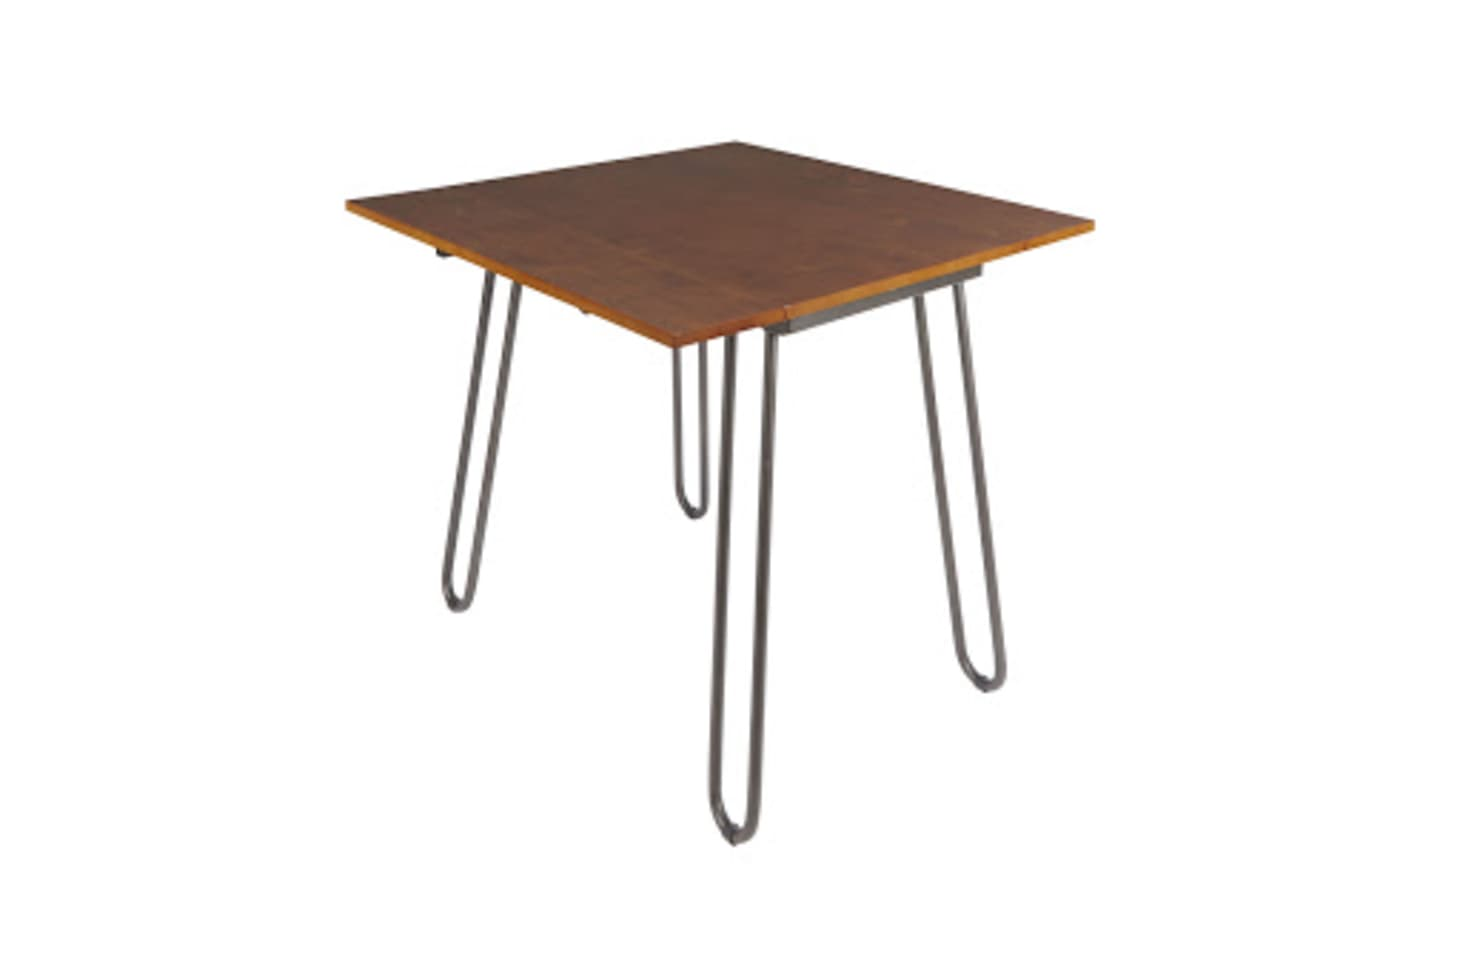 bd0593a5d8ea The 15 Best Extendable Drop-Leaf & Gateleg Tables | Apartment ...